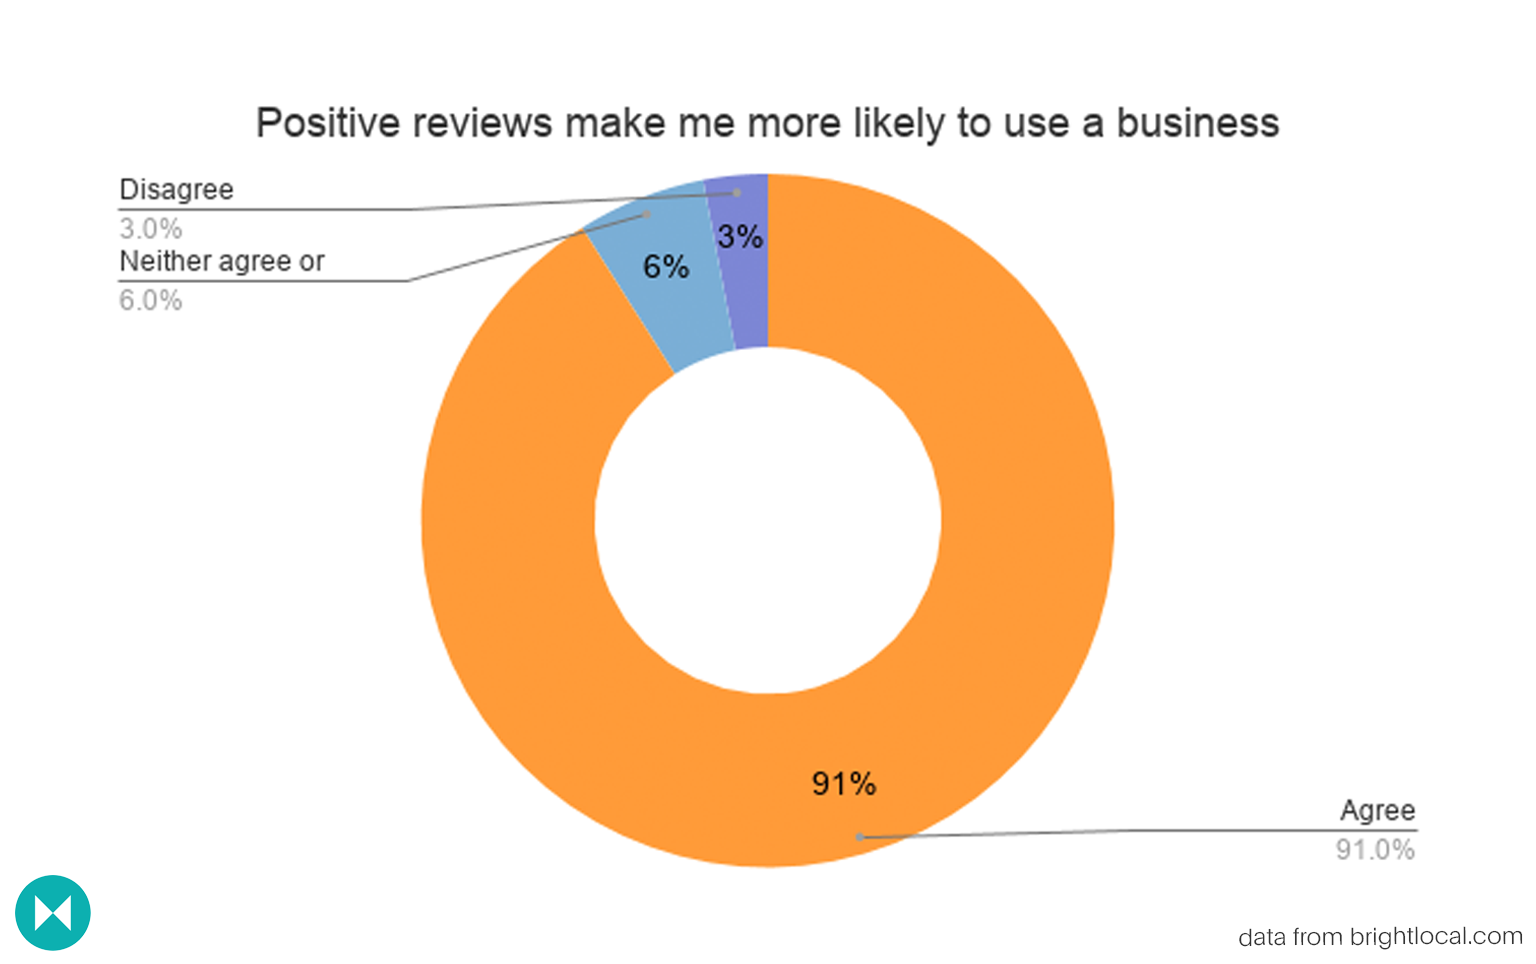 donut graph depicting whether positive reviews make people more likely to use a business